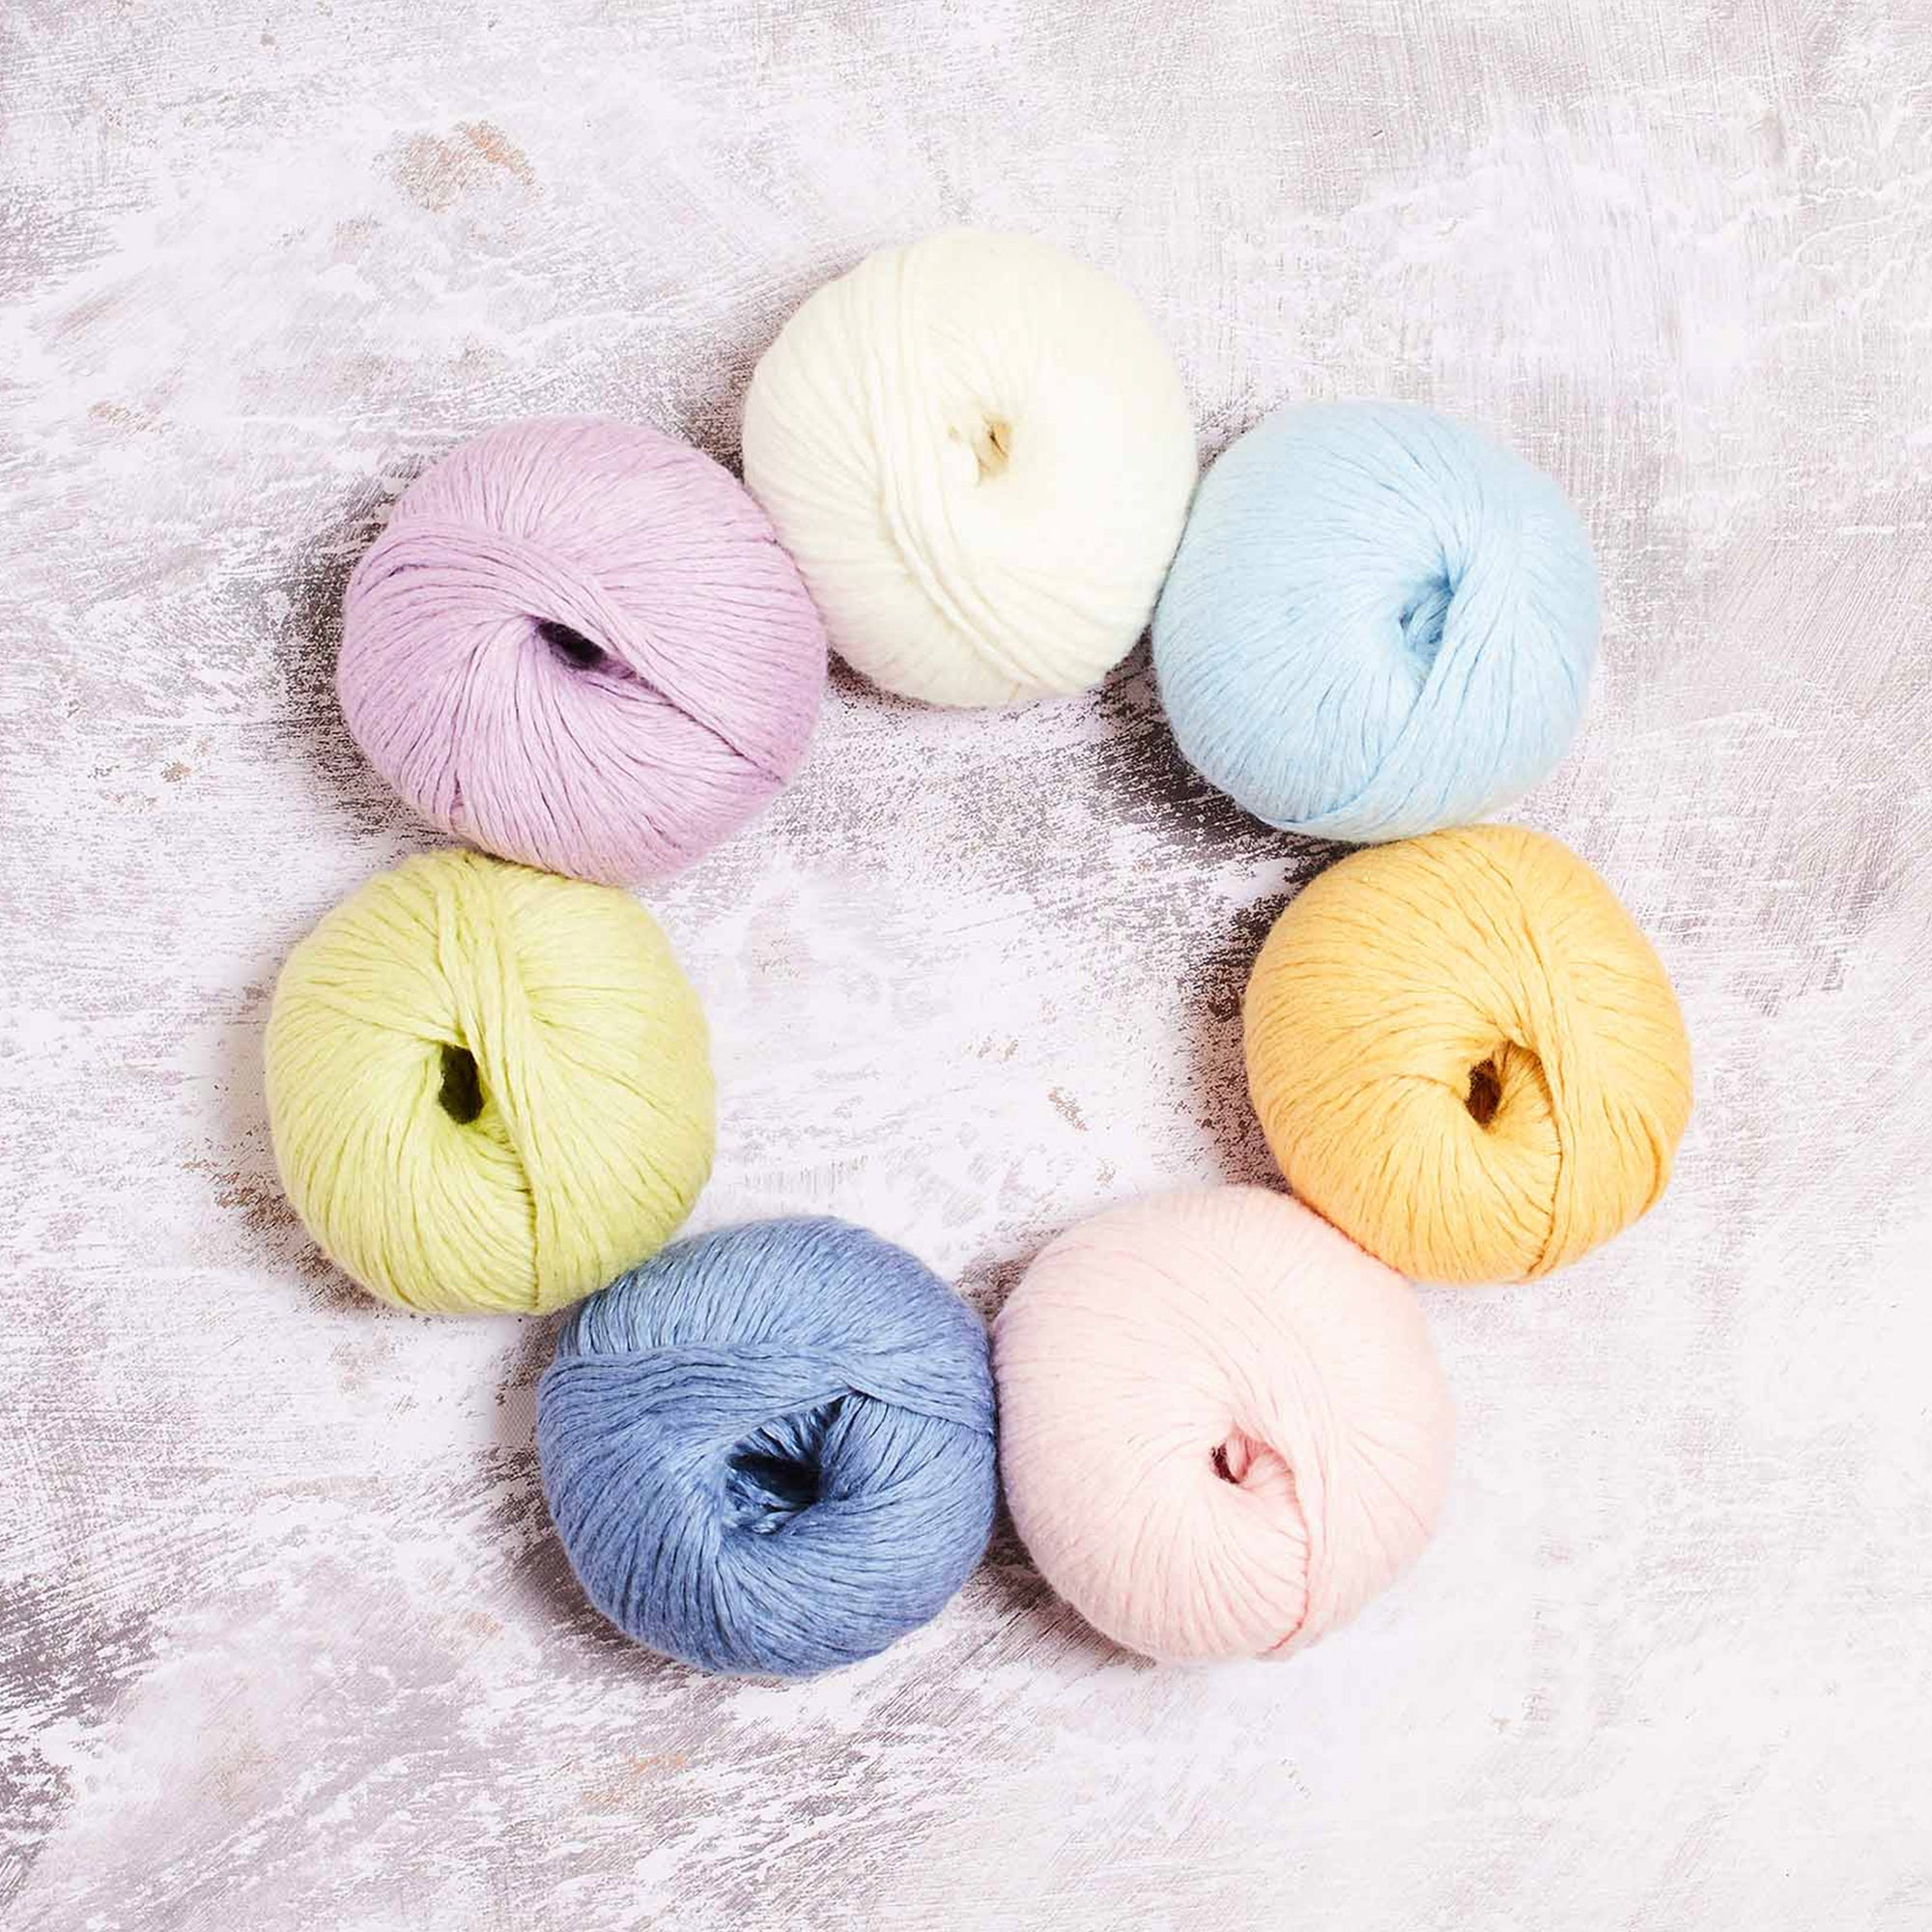 Cotton Braid 50g balls